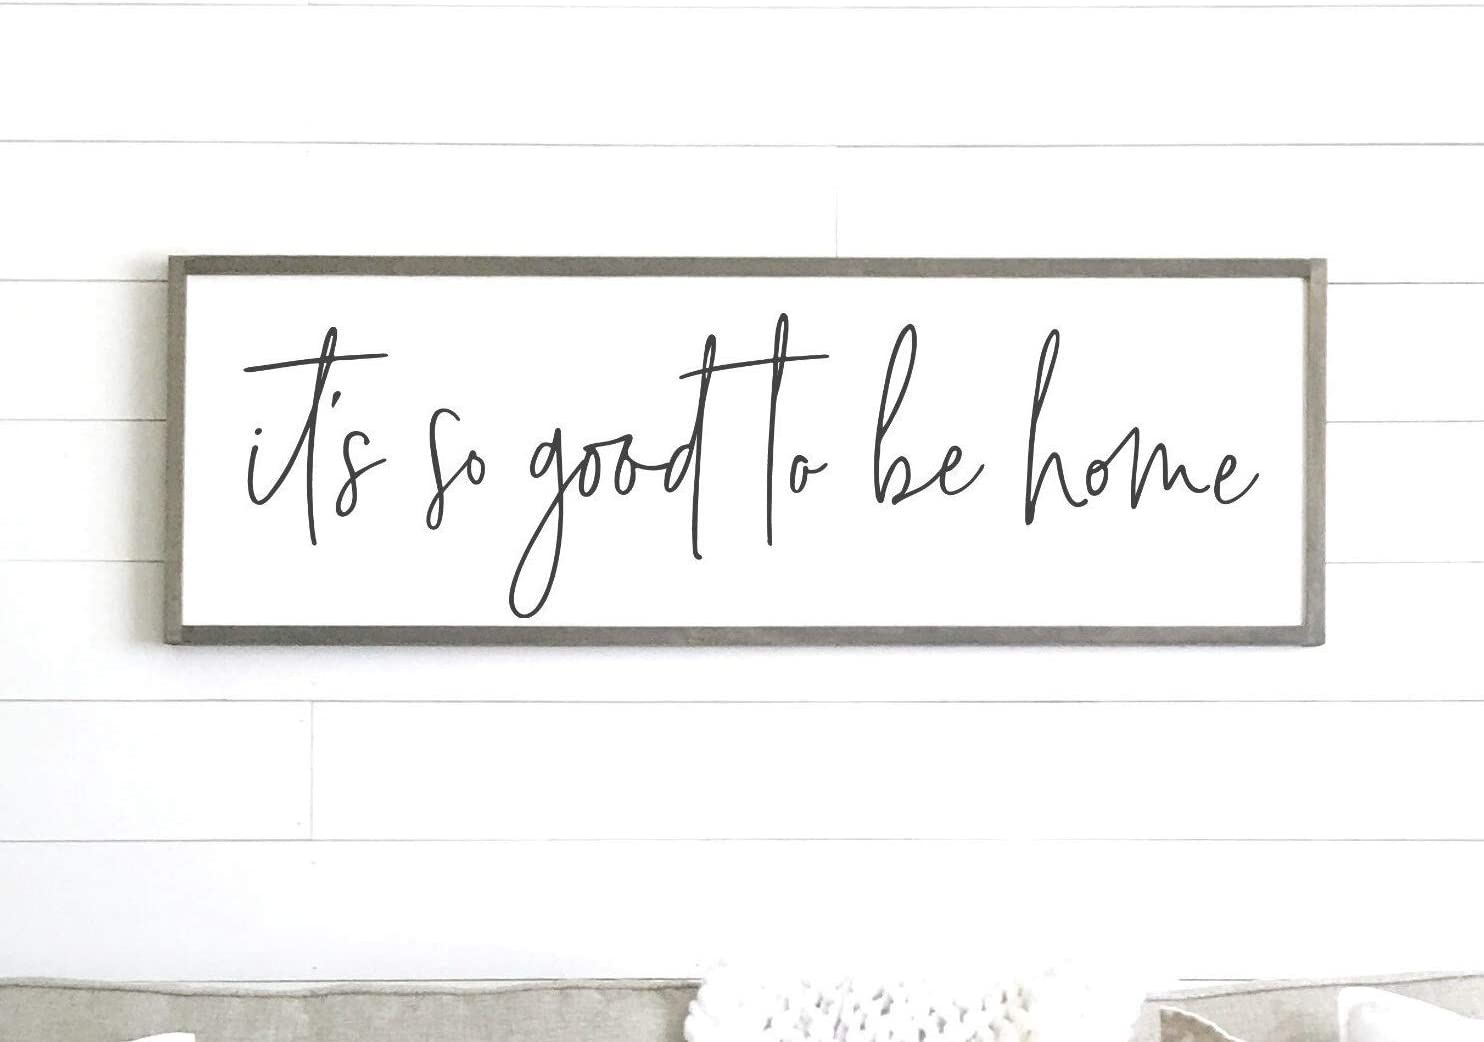 EricauBird Wall Decor its so Good to be Home Sign Wood Framed Sign Home Decor Wall Art Farmhouse Sign Farmhouse Decor, Wall Plaques Art, Rustic Signs with Sayings, 12x22